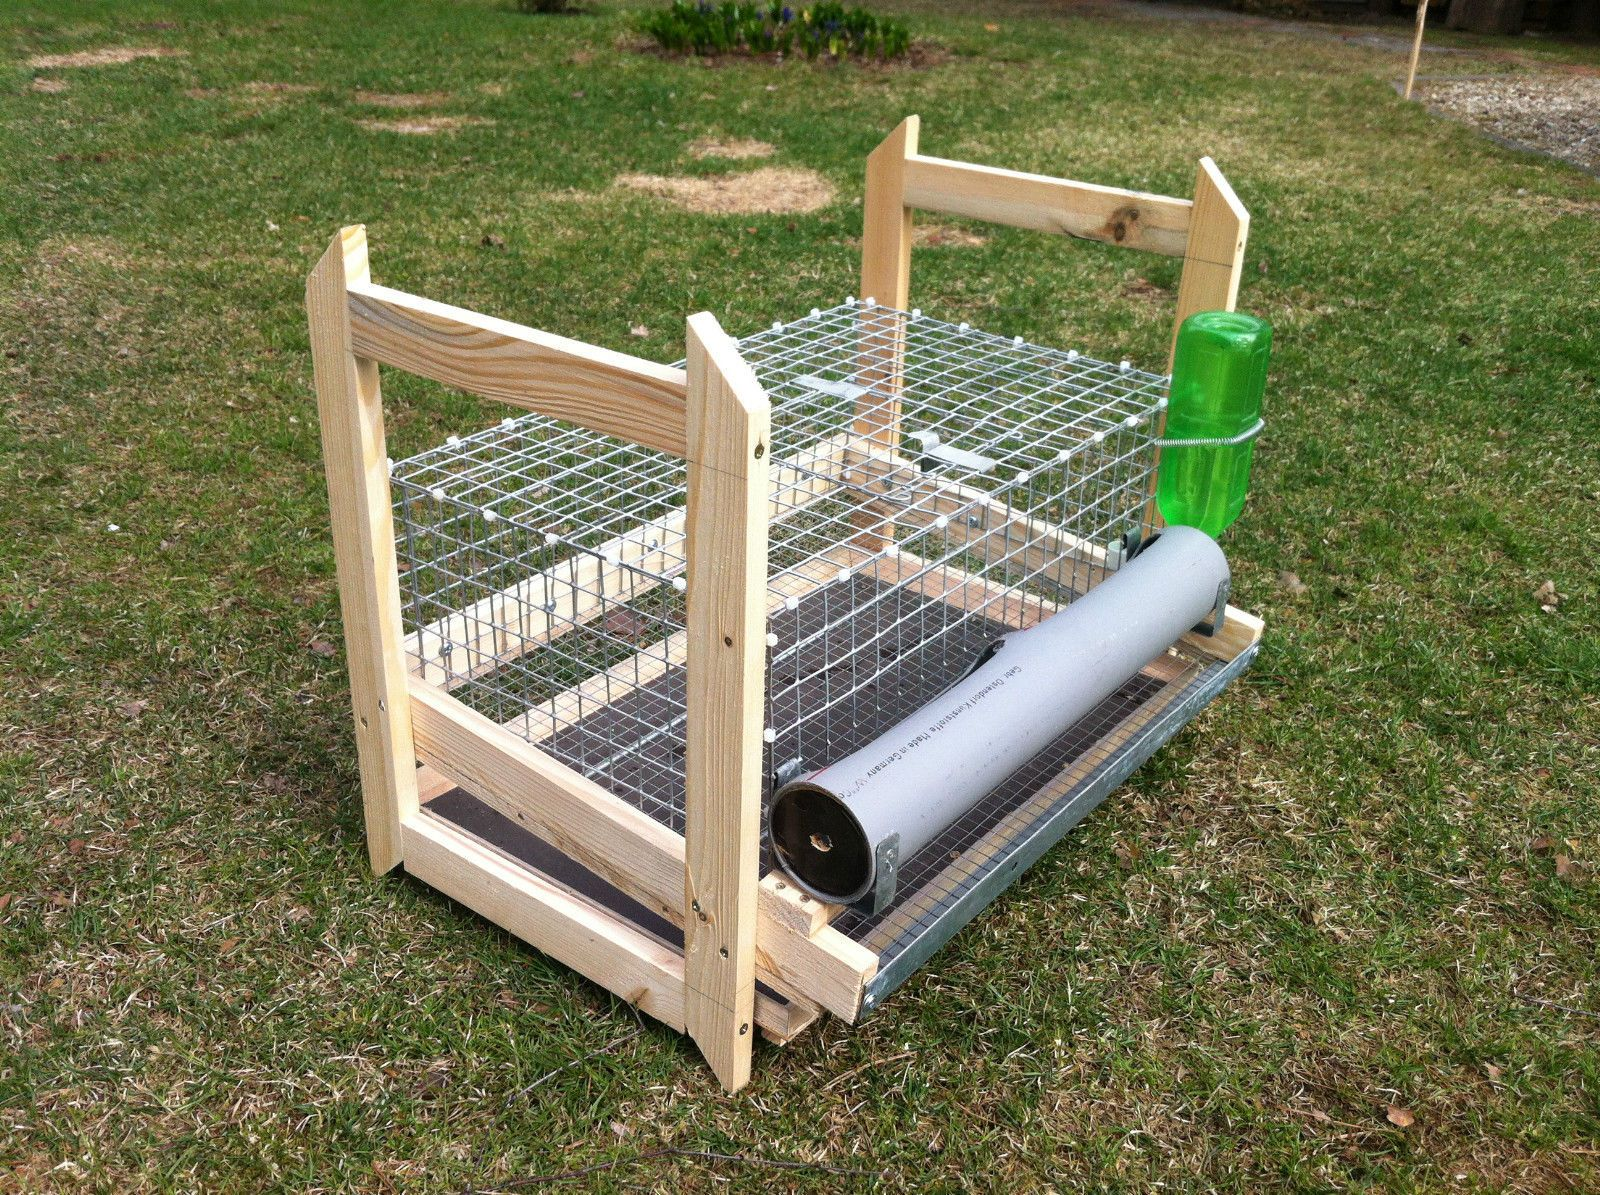 Details about QUAIL CAGE FOR 16 QUAILS WITH FEEDER AND